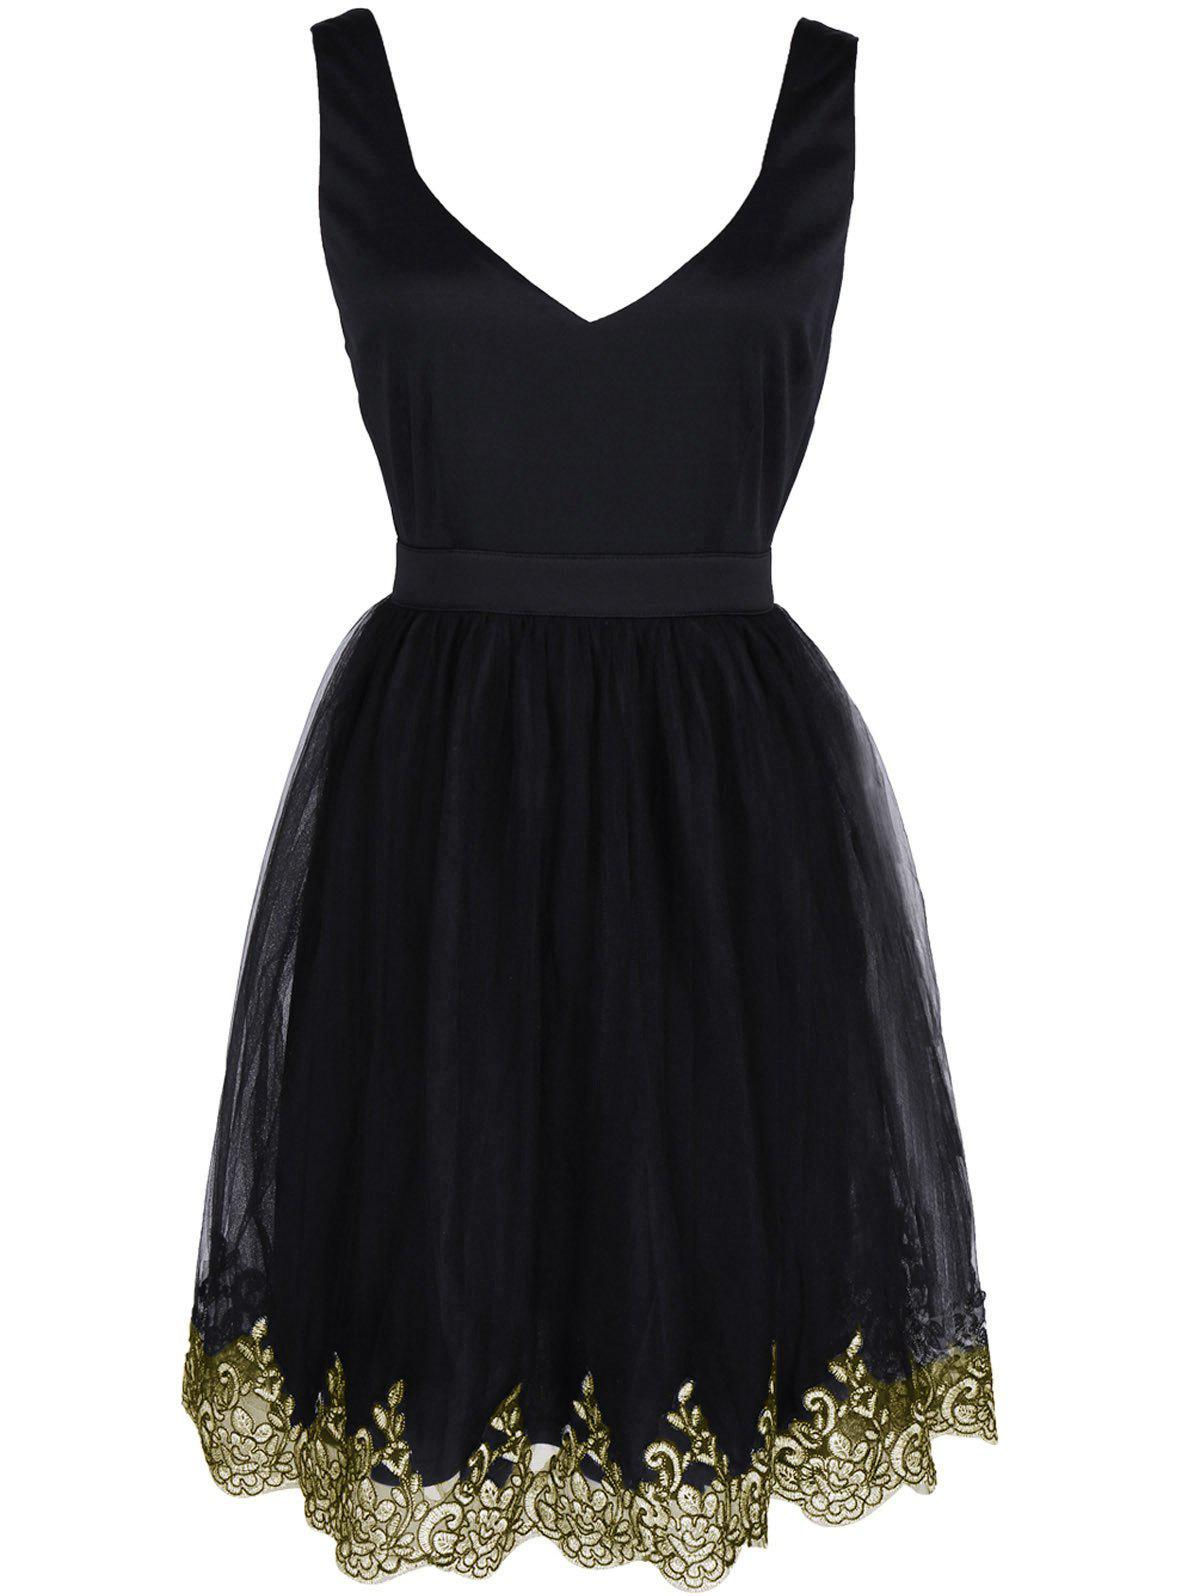 Shops Alluring Women's Floral Embroidered Lace Spliced Dress